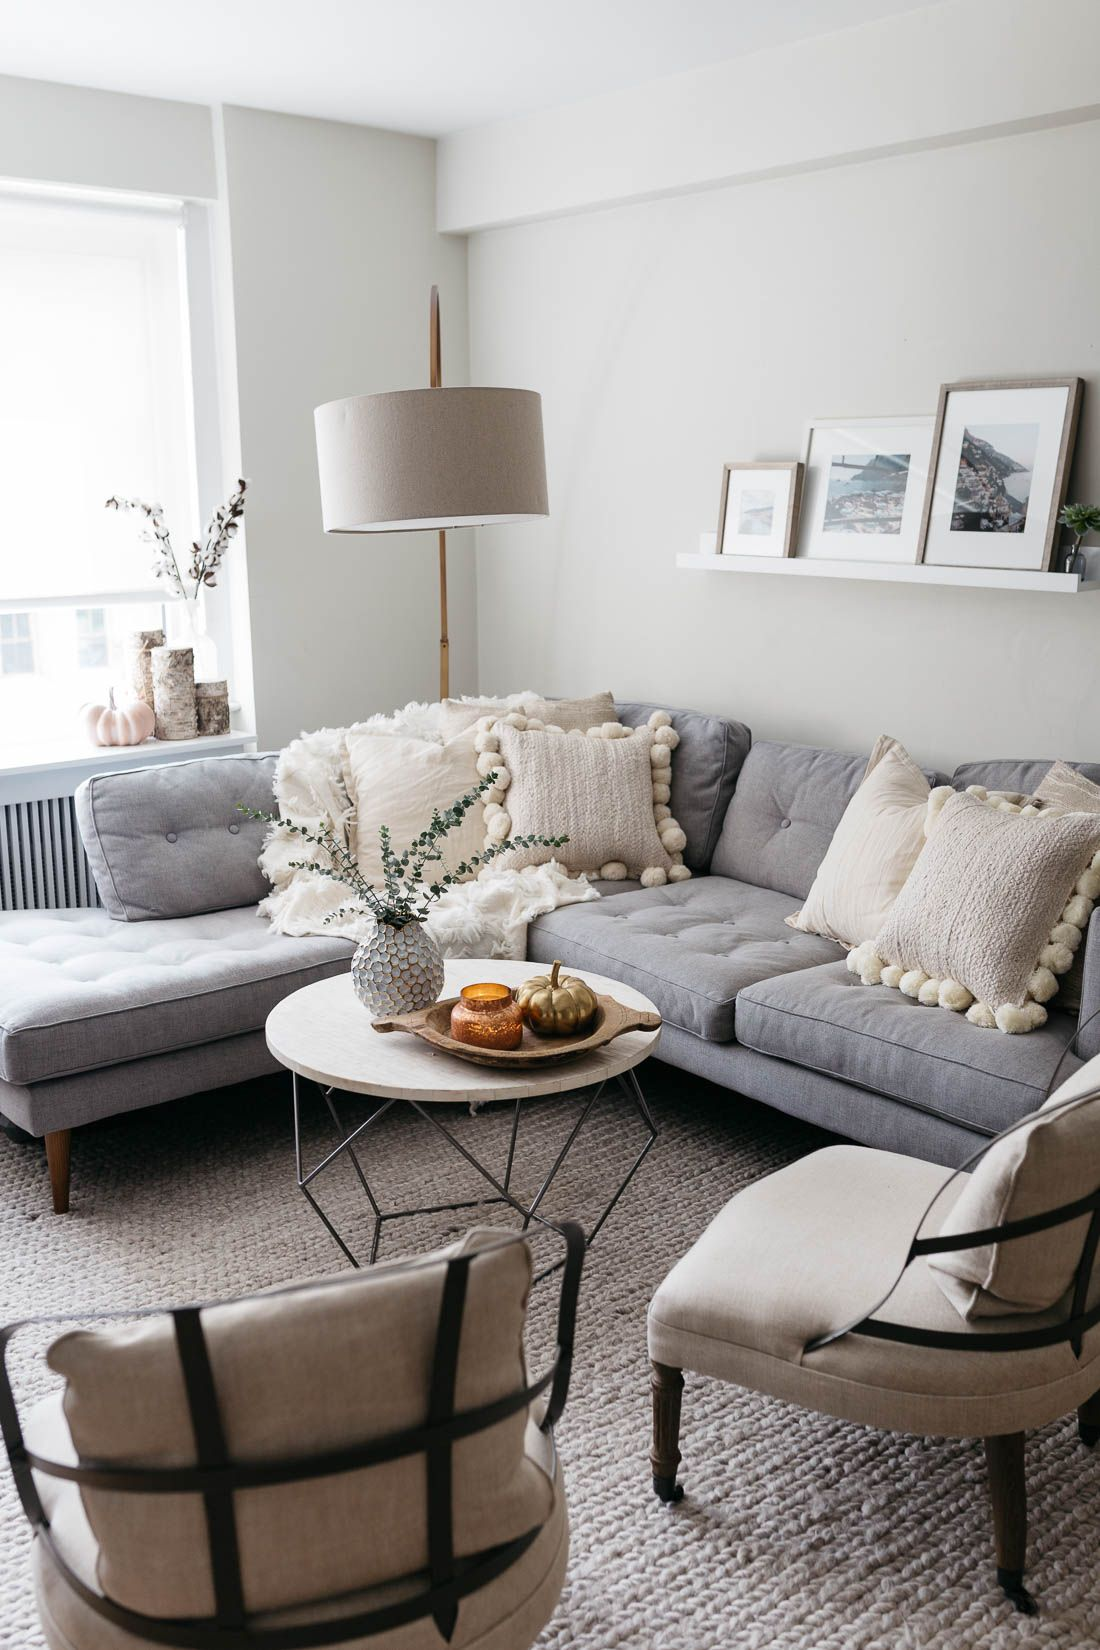 How To Style A Sectional Couch How To Place Pillows On A Sectional Couch Apartment Living Room Small Apartment Living Room Living Room Decor Apartment